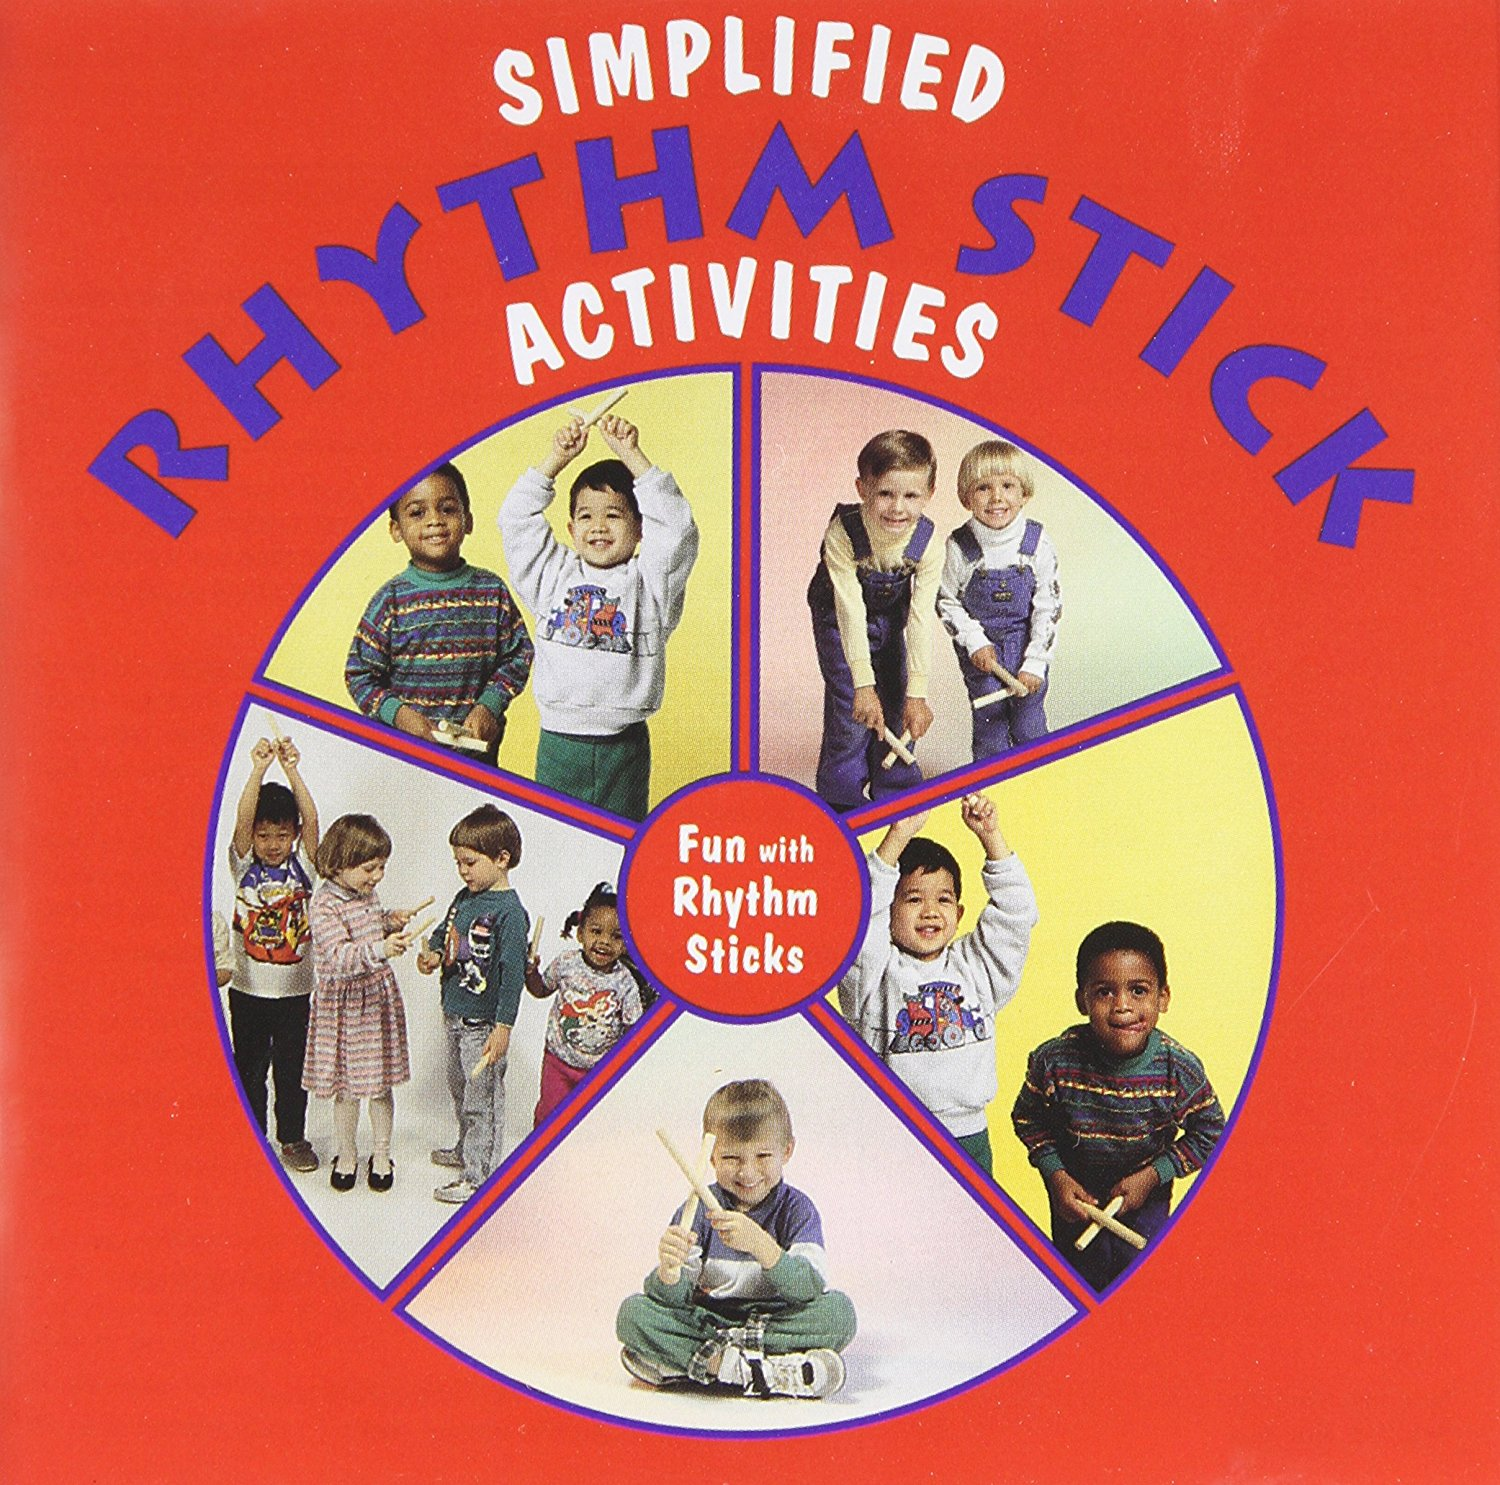 Kimbo Educational Simplified Rhythm Stick Activities - Tap Your Way To Fun Cd